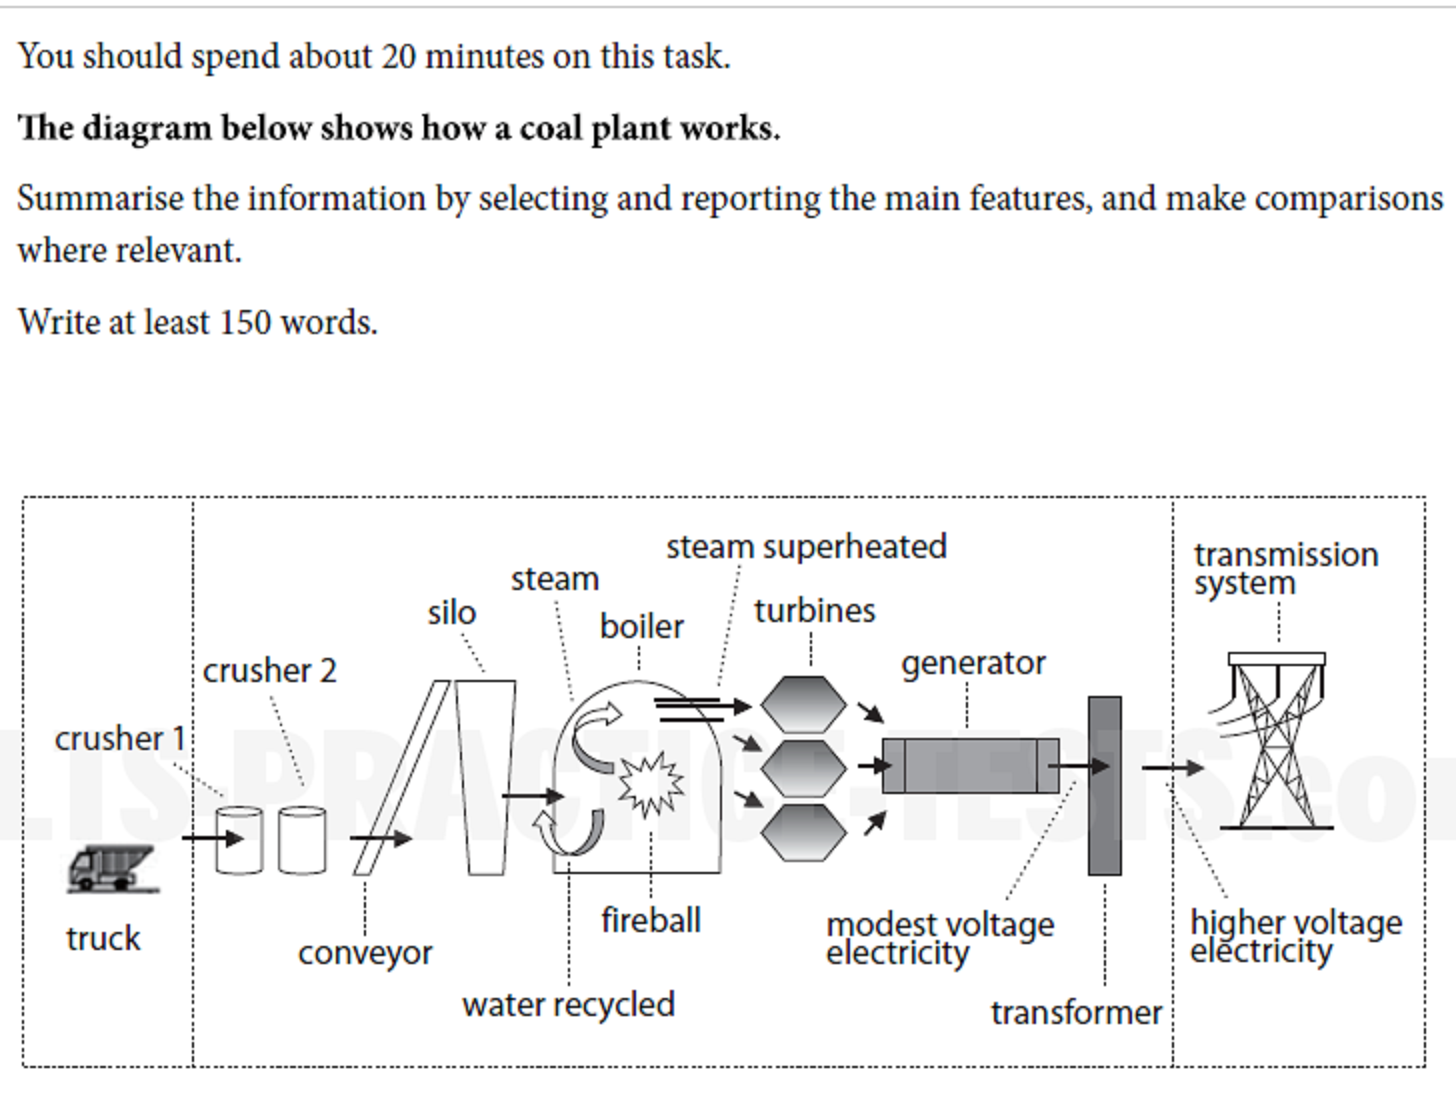 small resolution of the diagram illustrates the coal plant process outlining from plants taken by a truck all the way through to producing electricity for transmission system